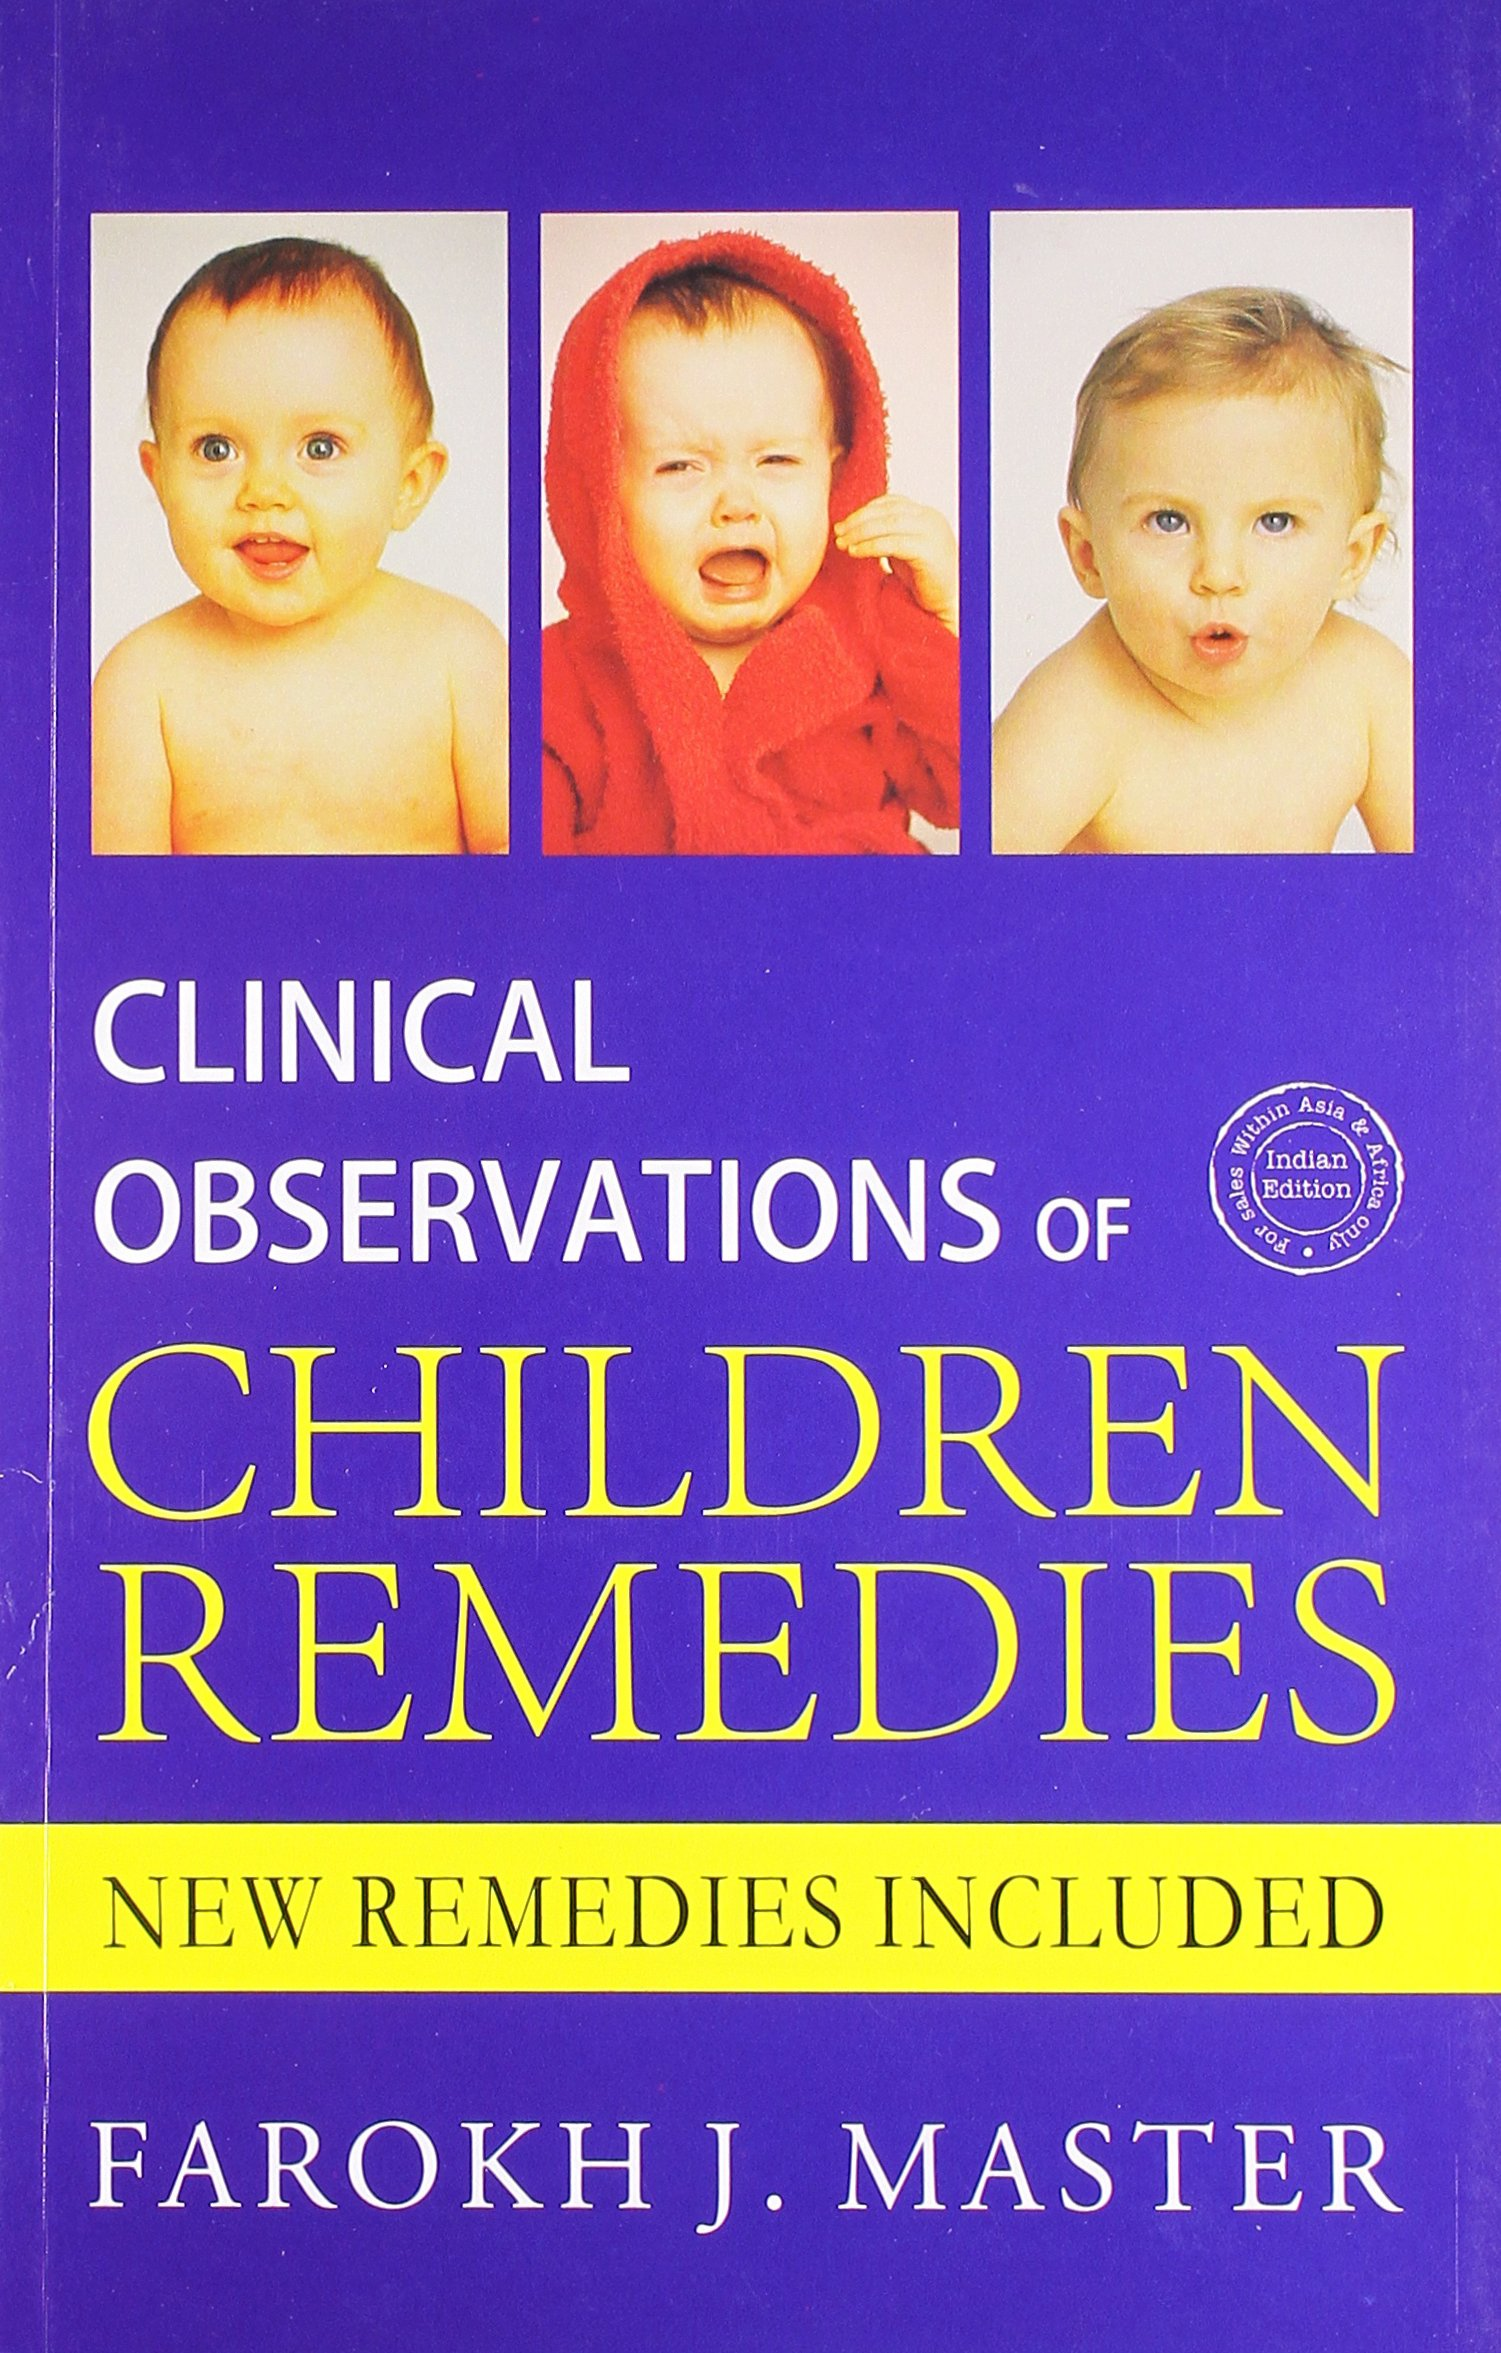 Download Clinical Observations Of Children's Remedies pdf